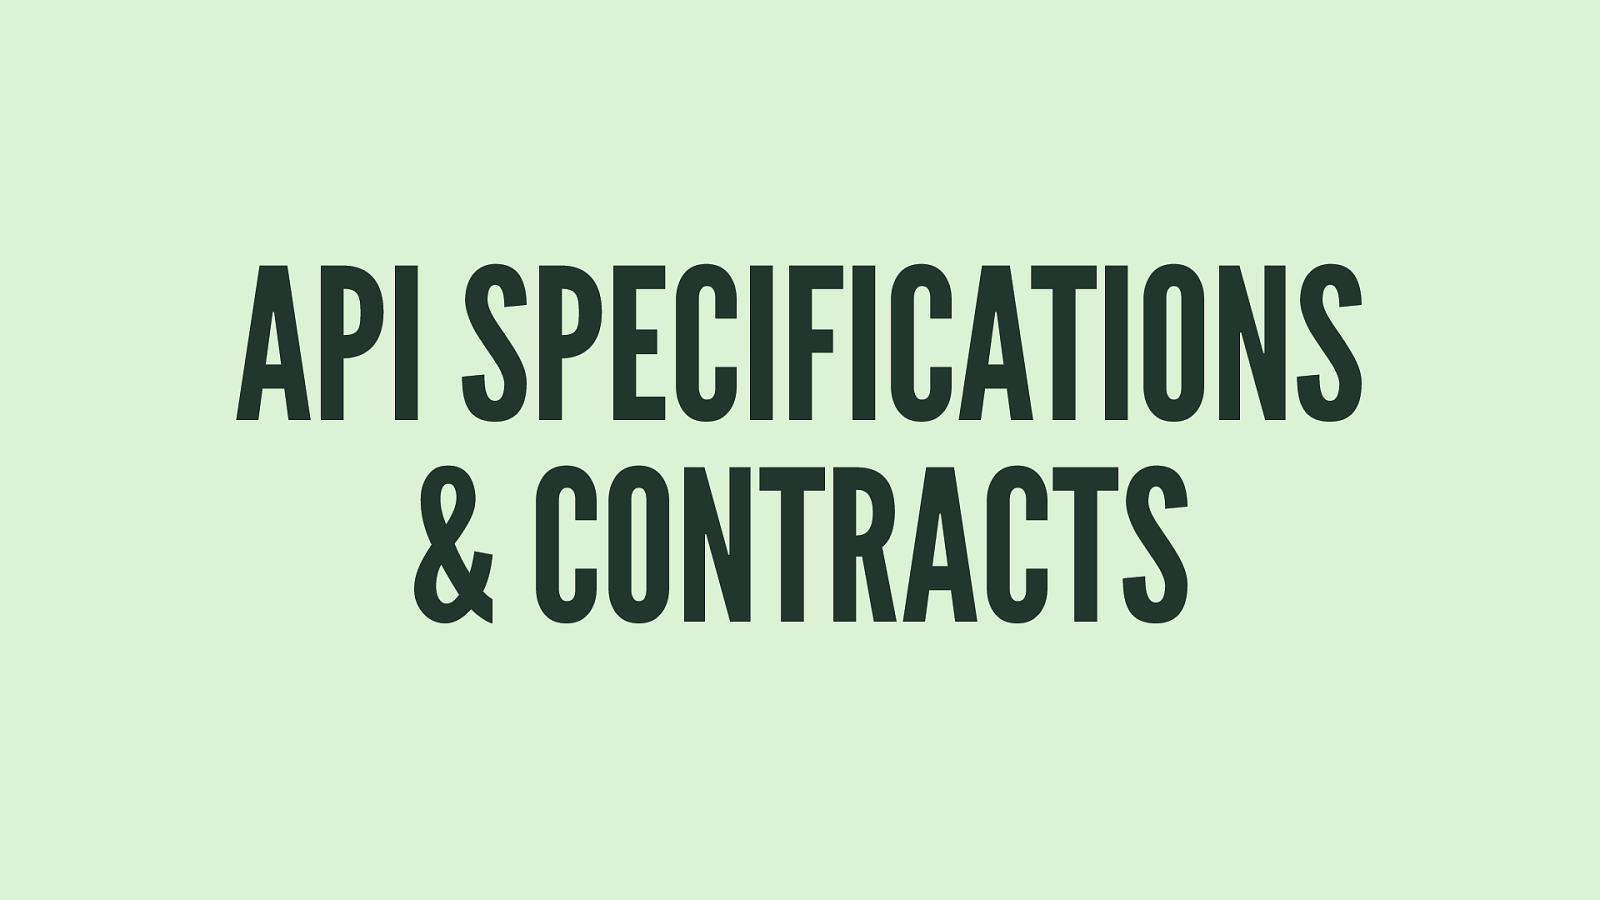 API specifications and contracts by Sébastien Charrier